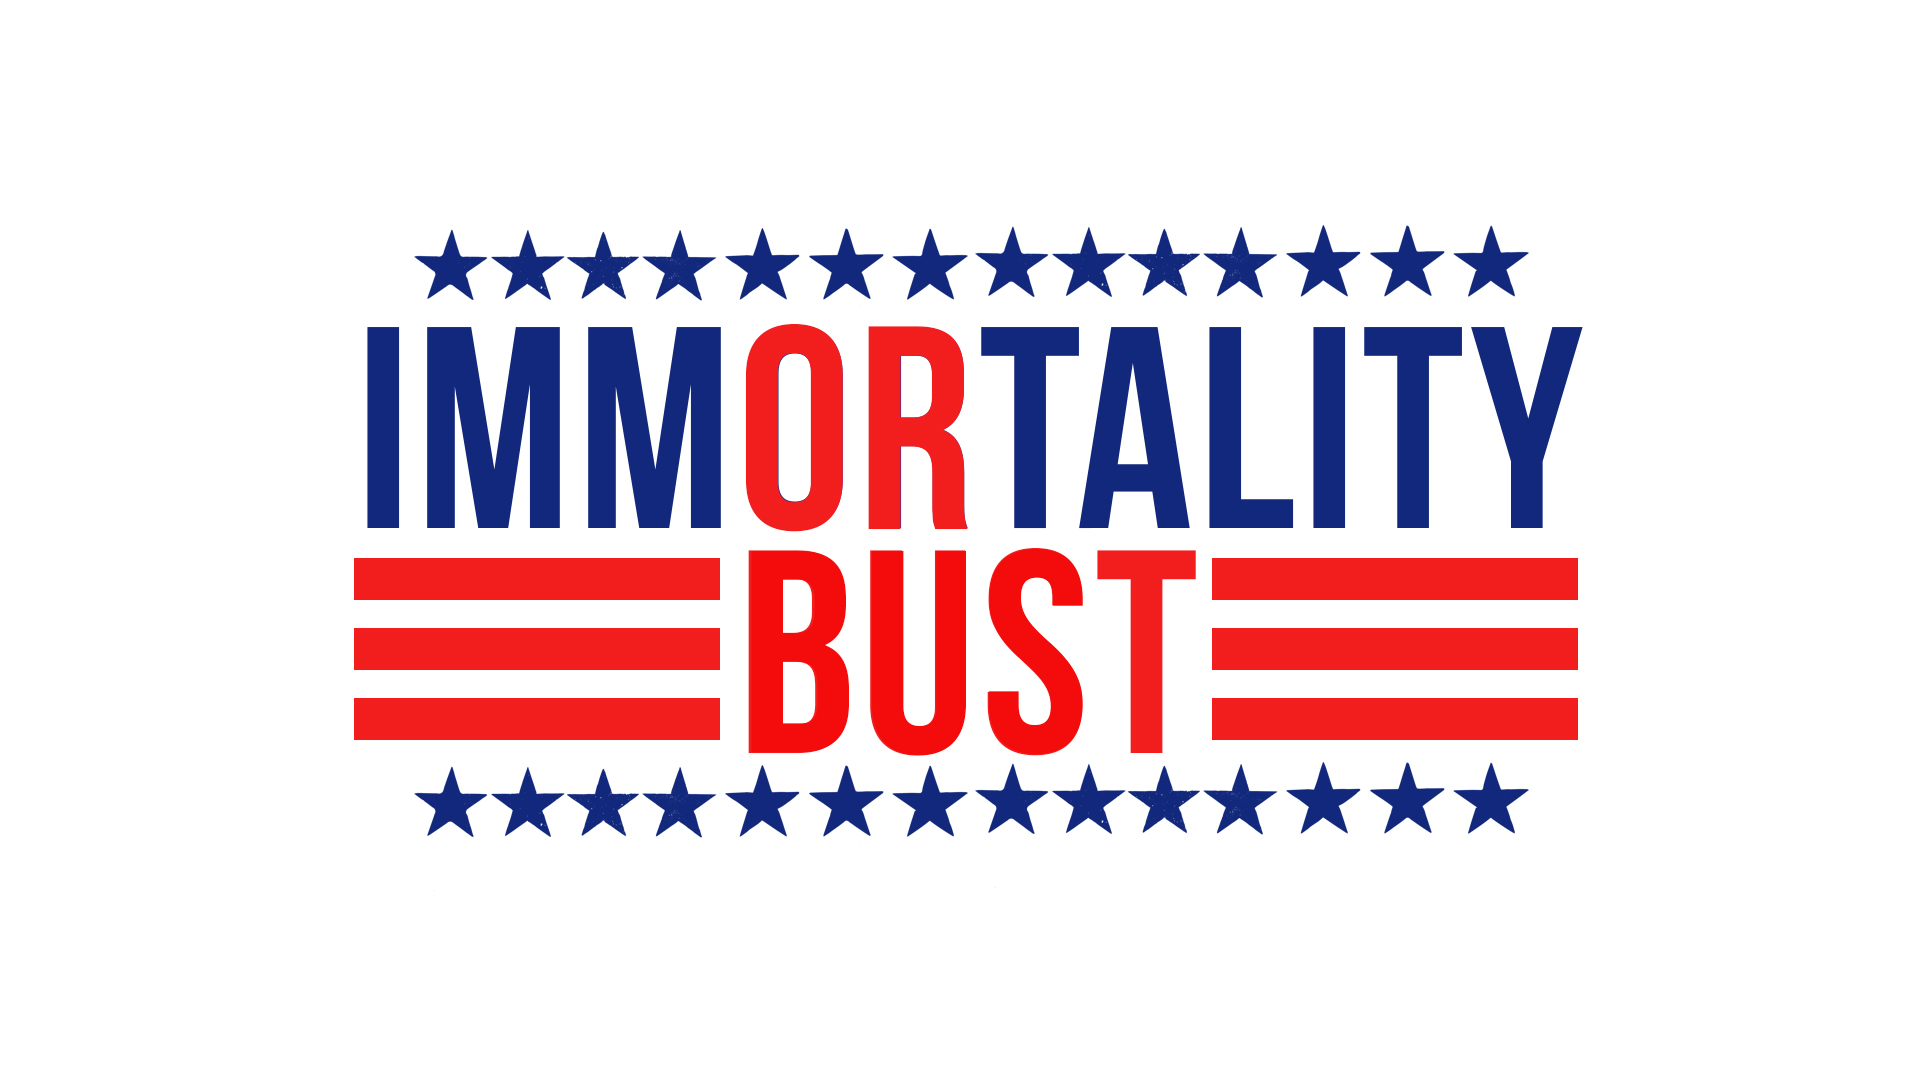 Immortality-or-Bust-MainTitle.jpg